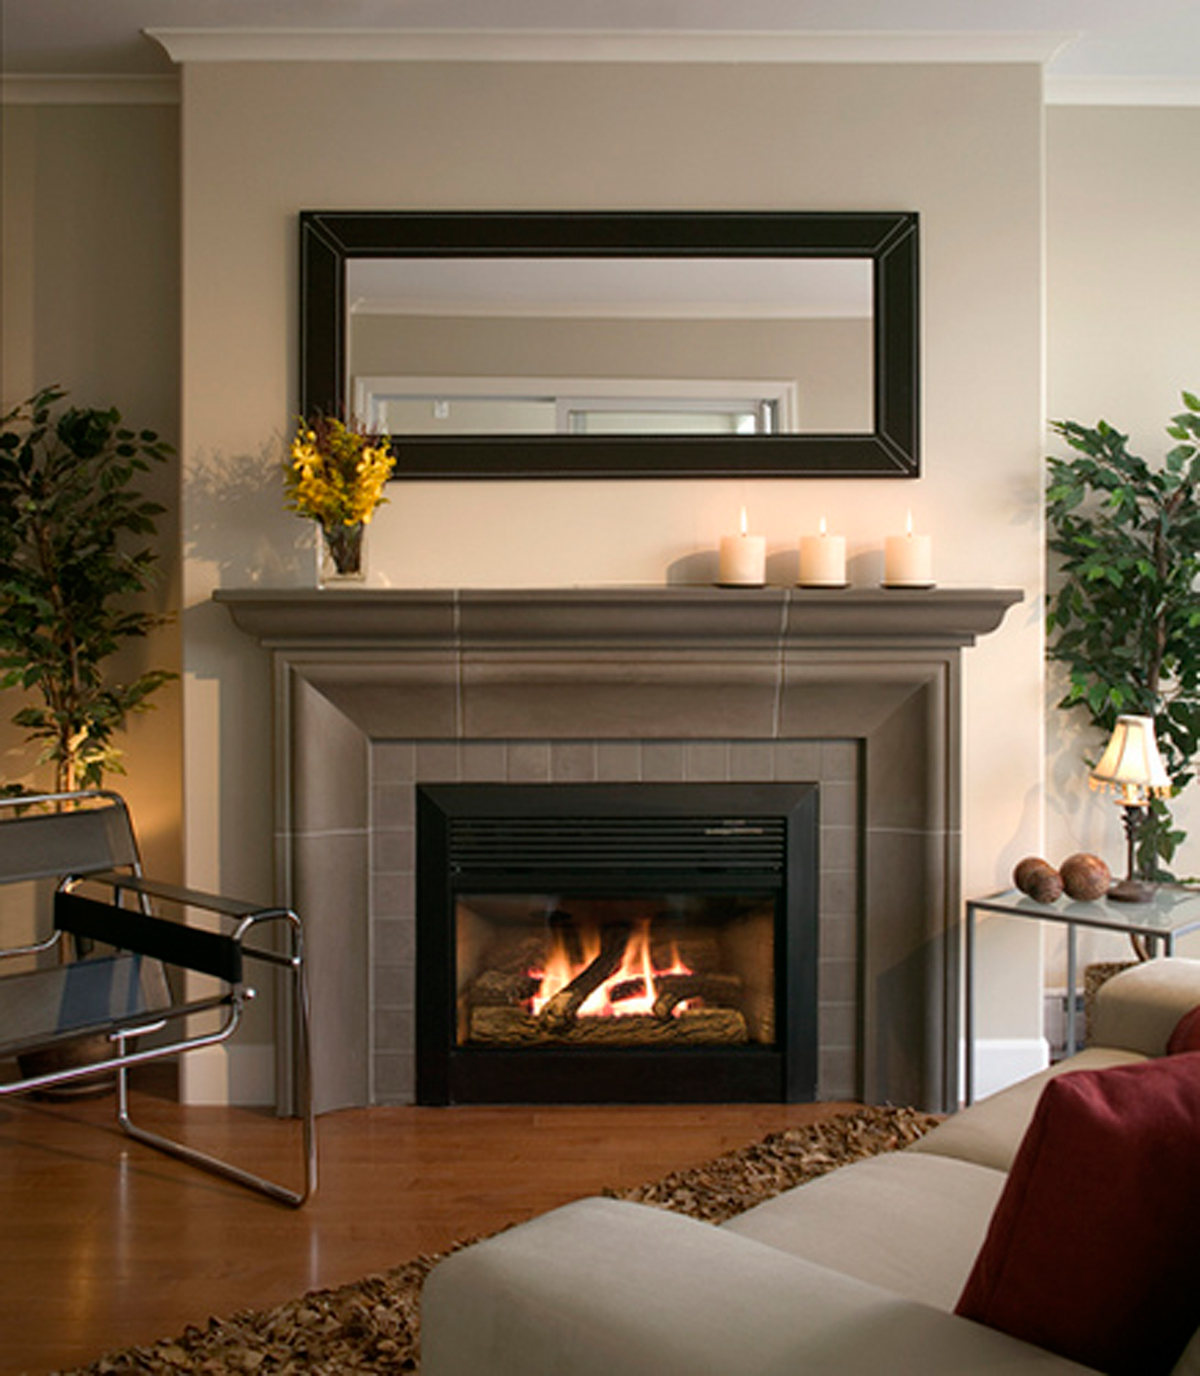 Fireplace designs ideas homesfeed Fireplace design ideas